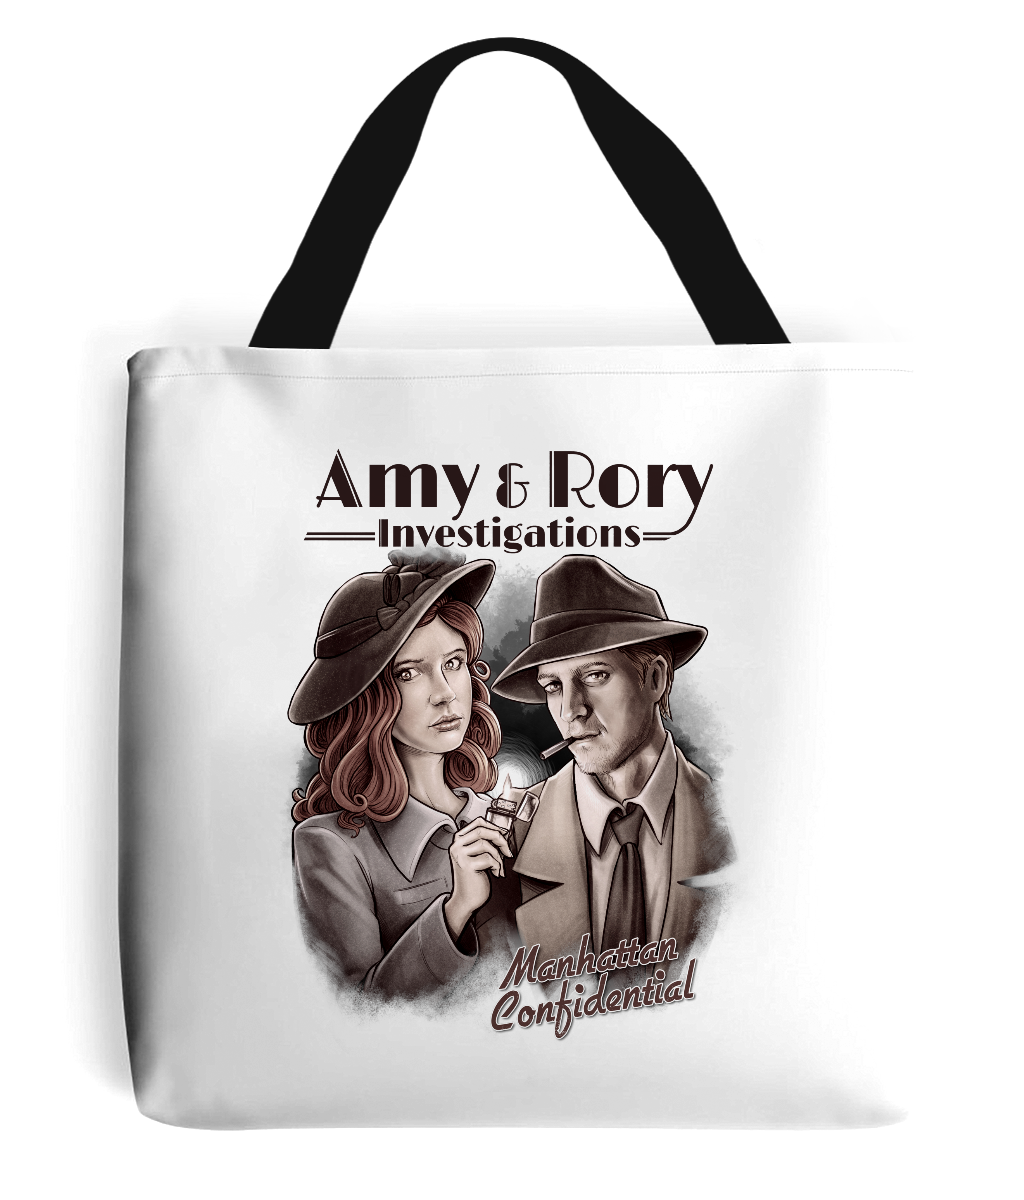 Doctor who amy and rory tote bag